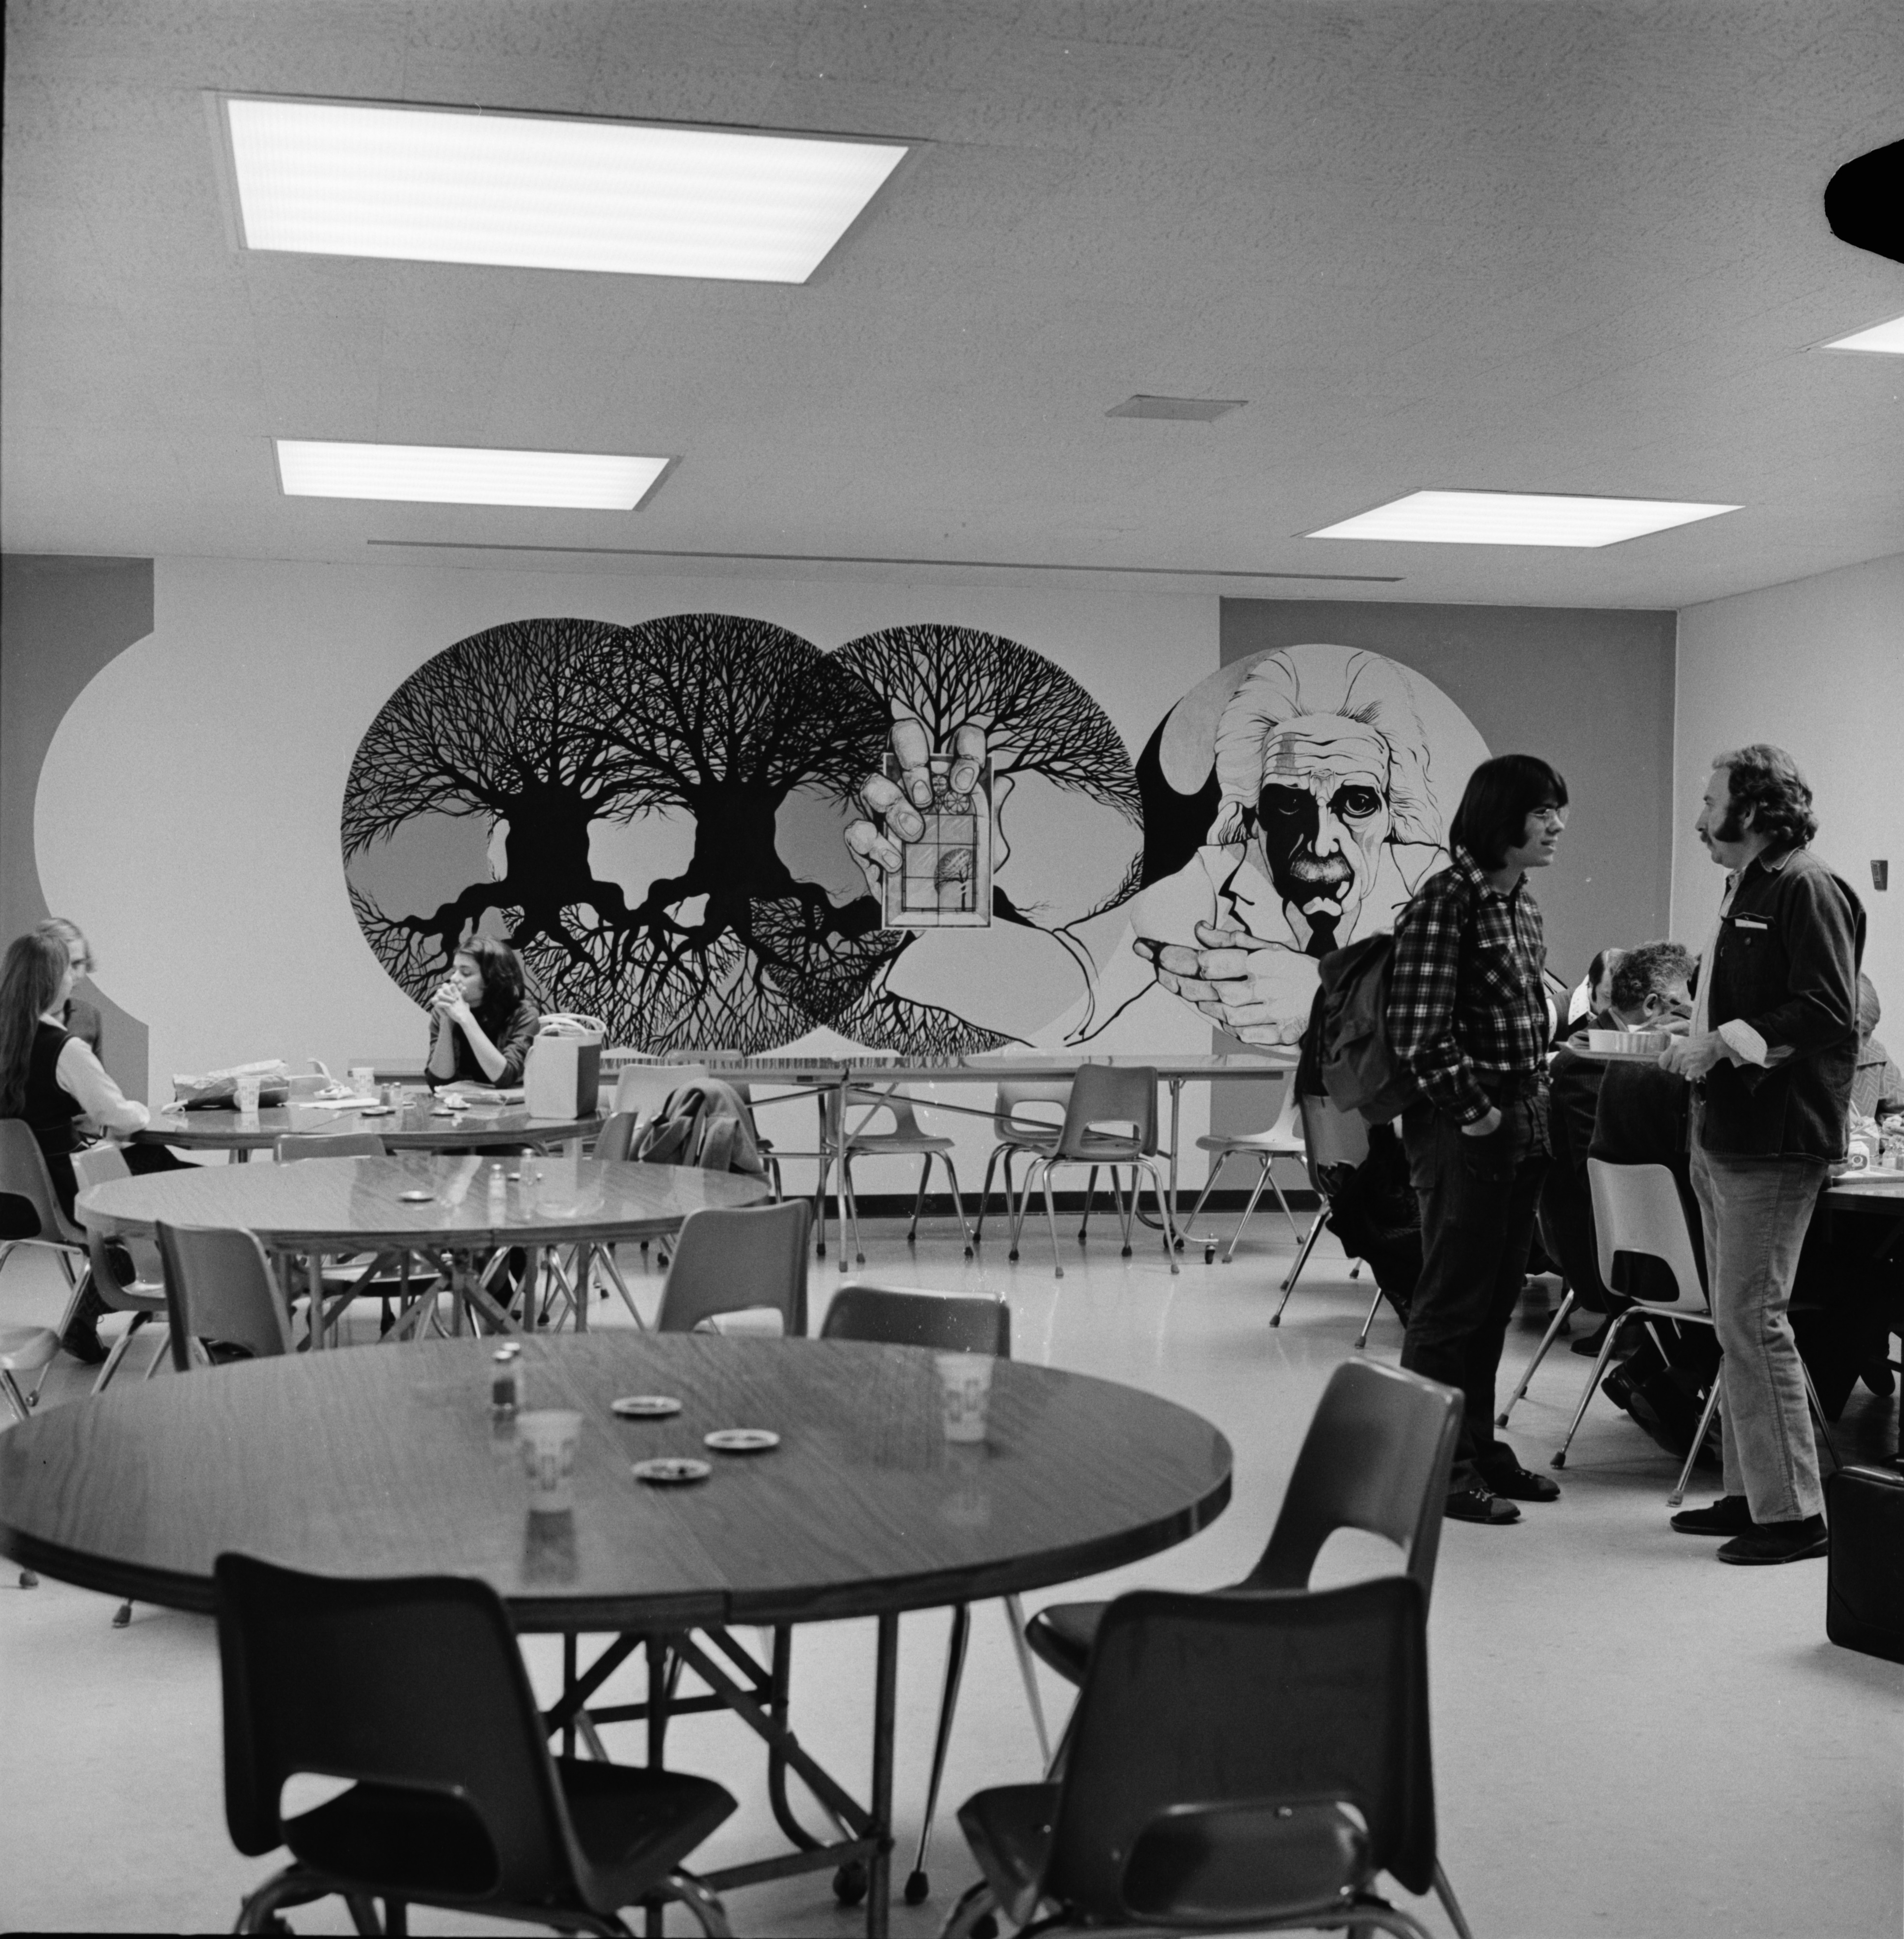 Teachers Lounge Lunchroom at Huron High Gets a New Mural, November 1972 image